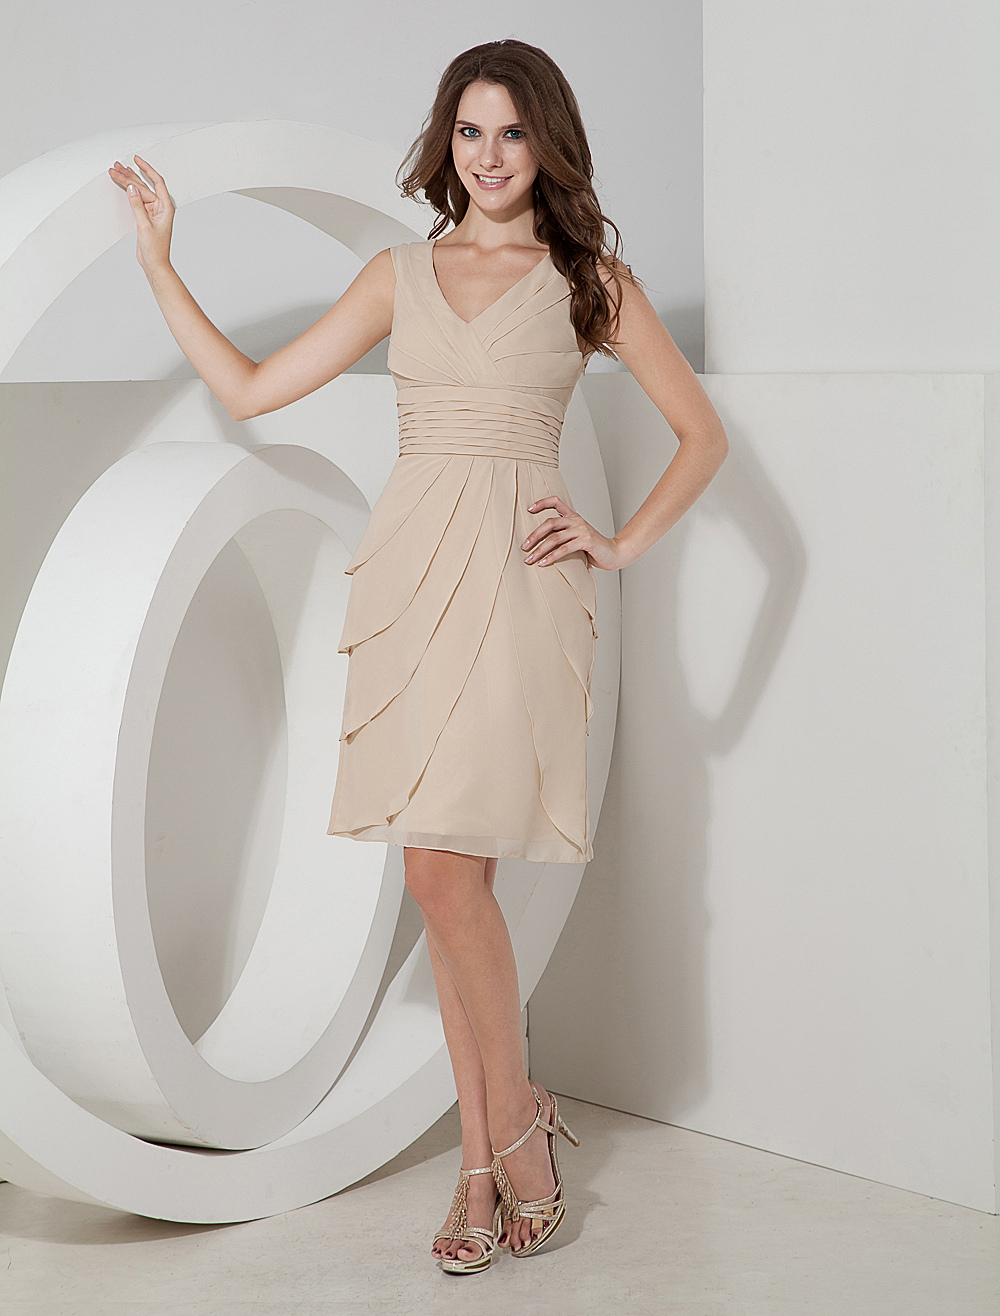 Buy Tiered V-Neck Chiffon Cocktail Dress Wedding Guest Dress for $107.09 in Milanoo store